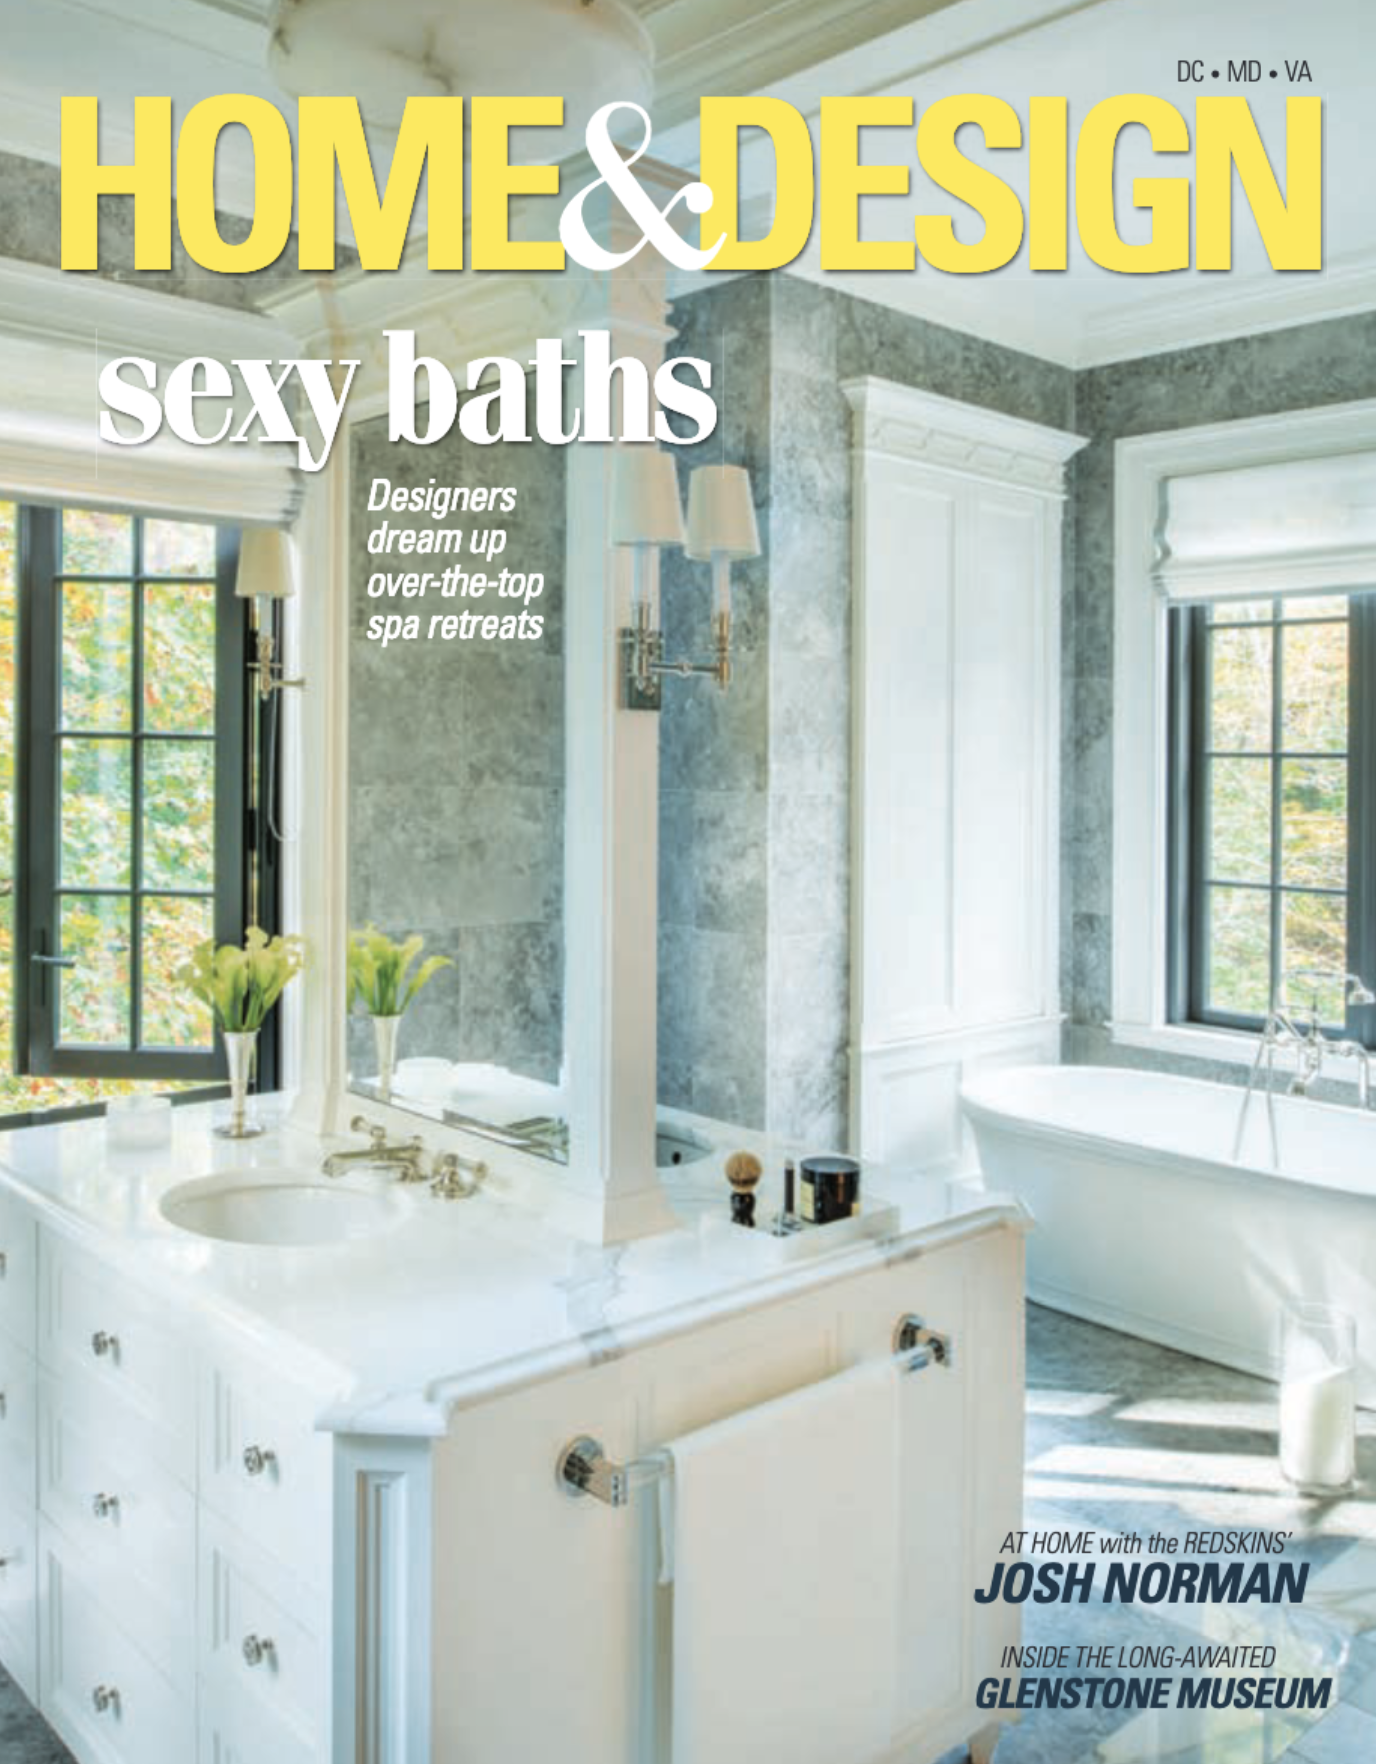 Home & Design Magazine  November/December 2018 Donald Lococo Architects